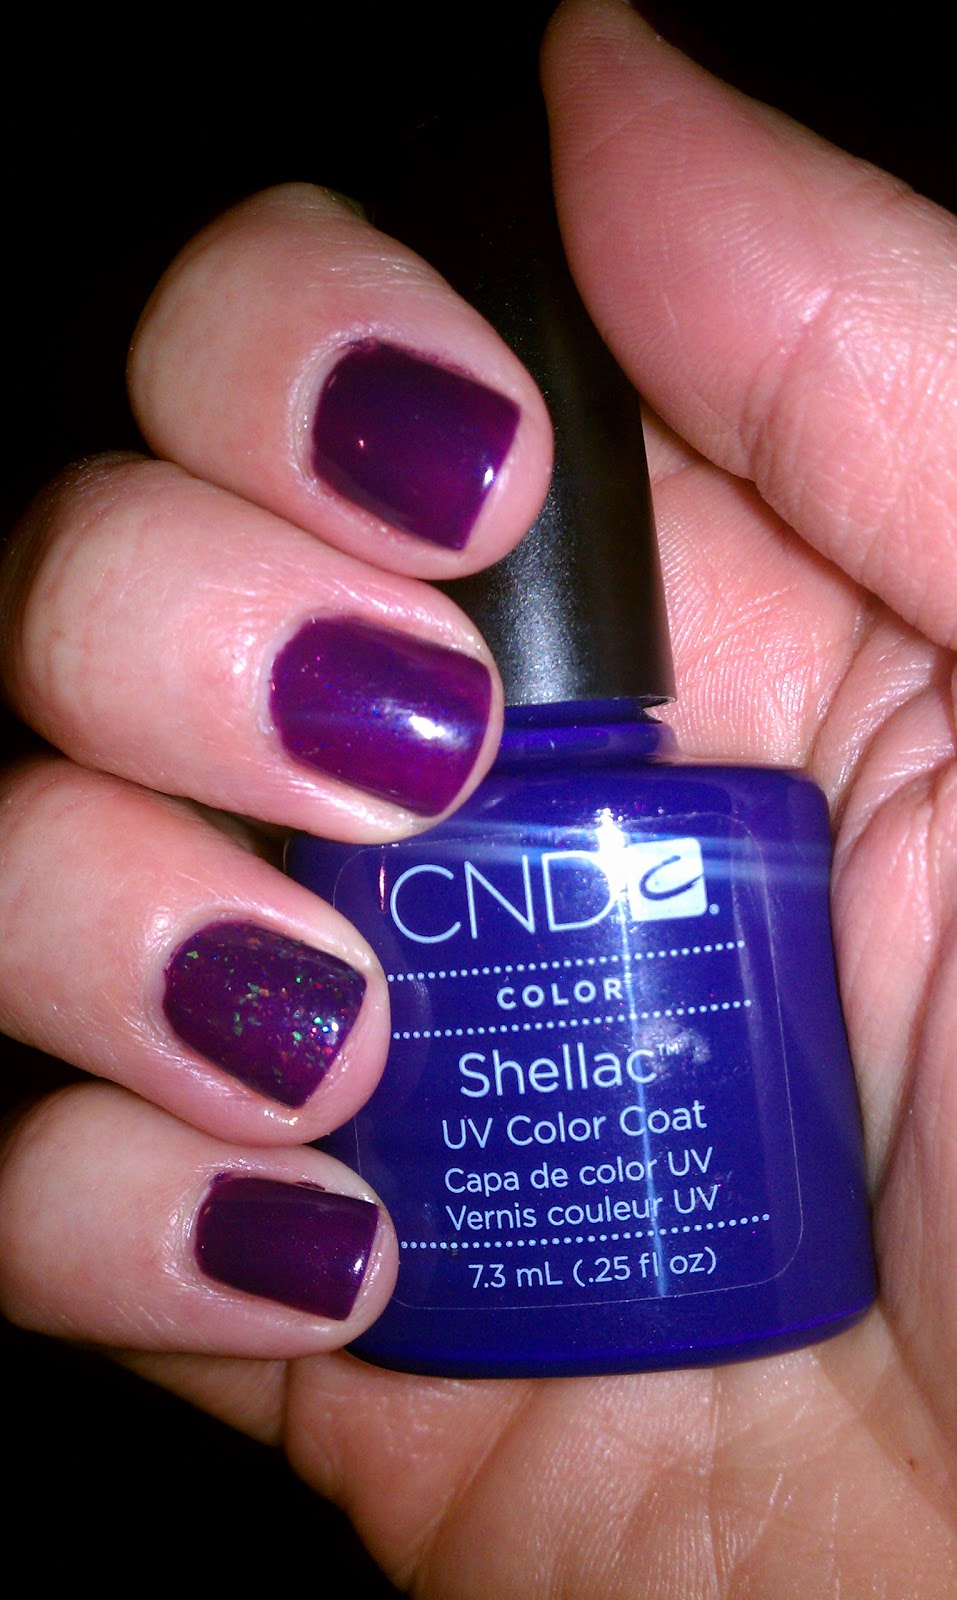 My NYE nails! CND Shellac in Rock Royalty with Zillionaire glitter on